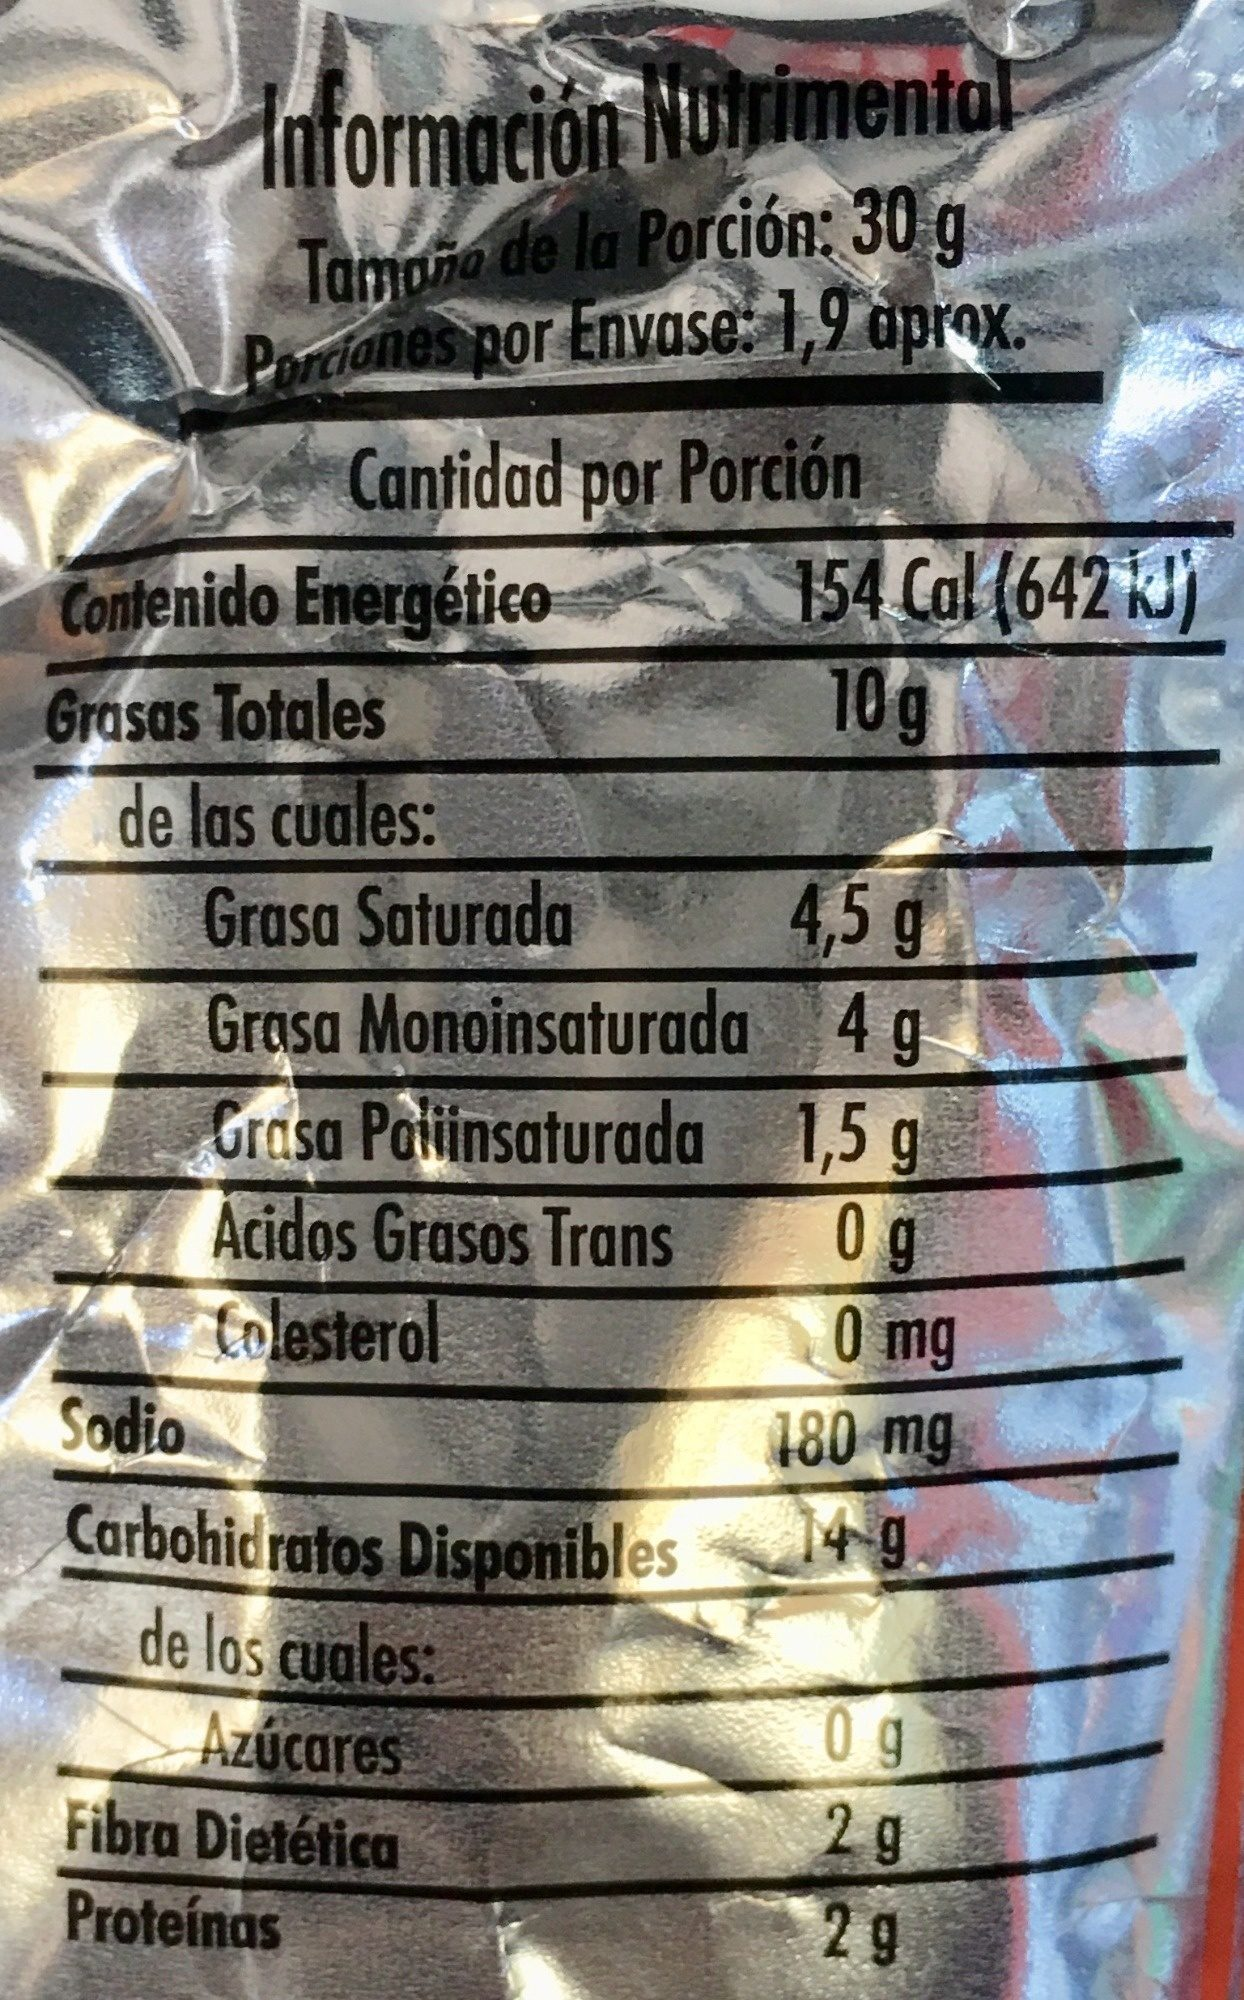 Frit-os Chile y Limón - Nutrition facts - es